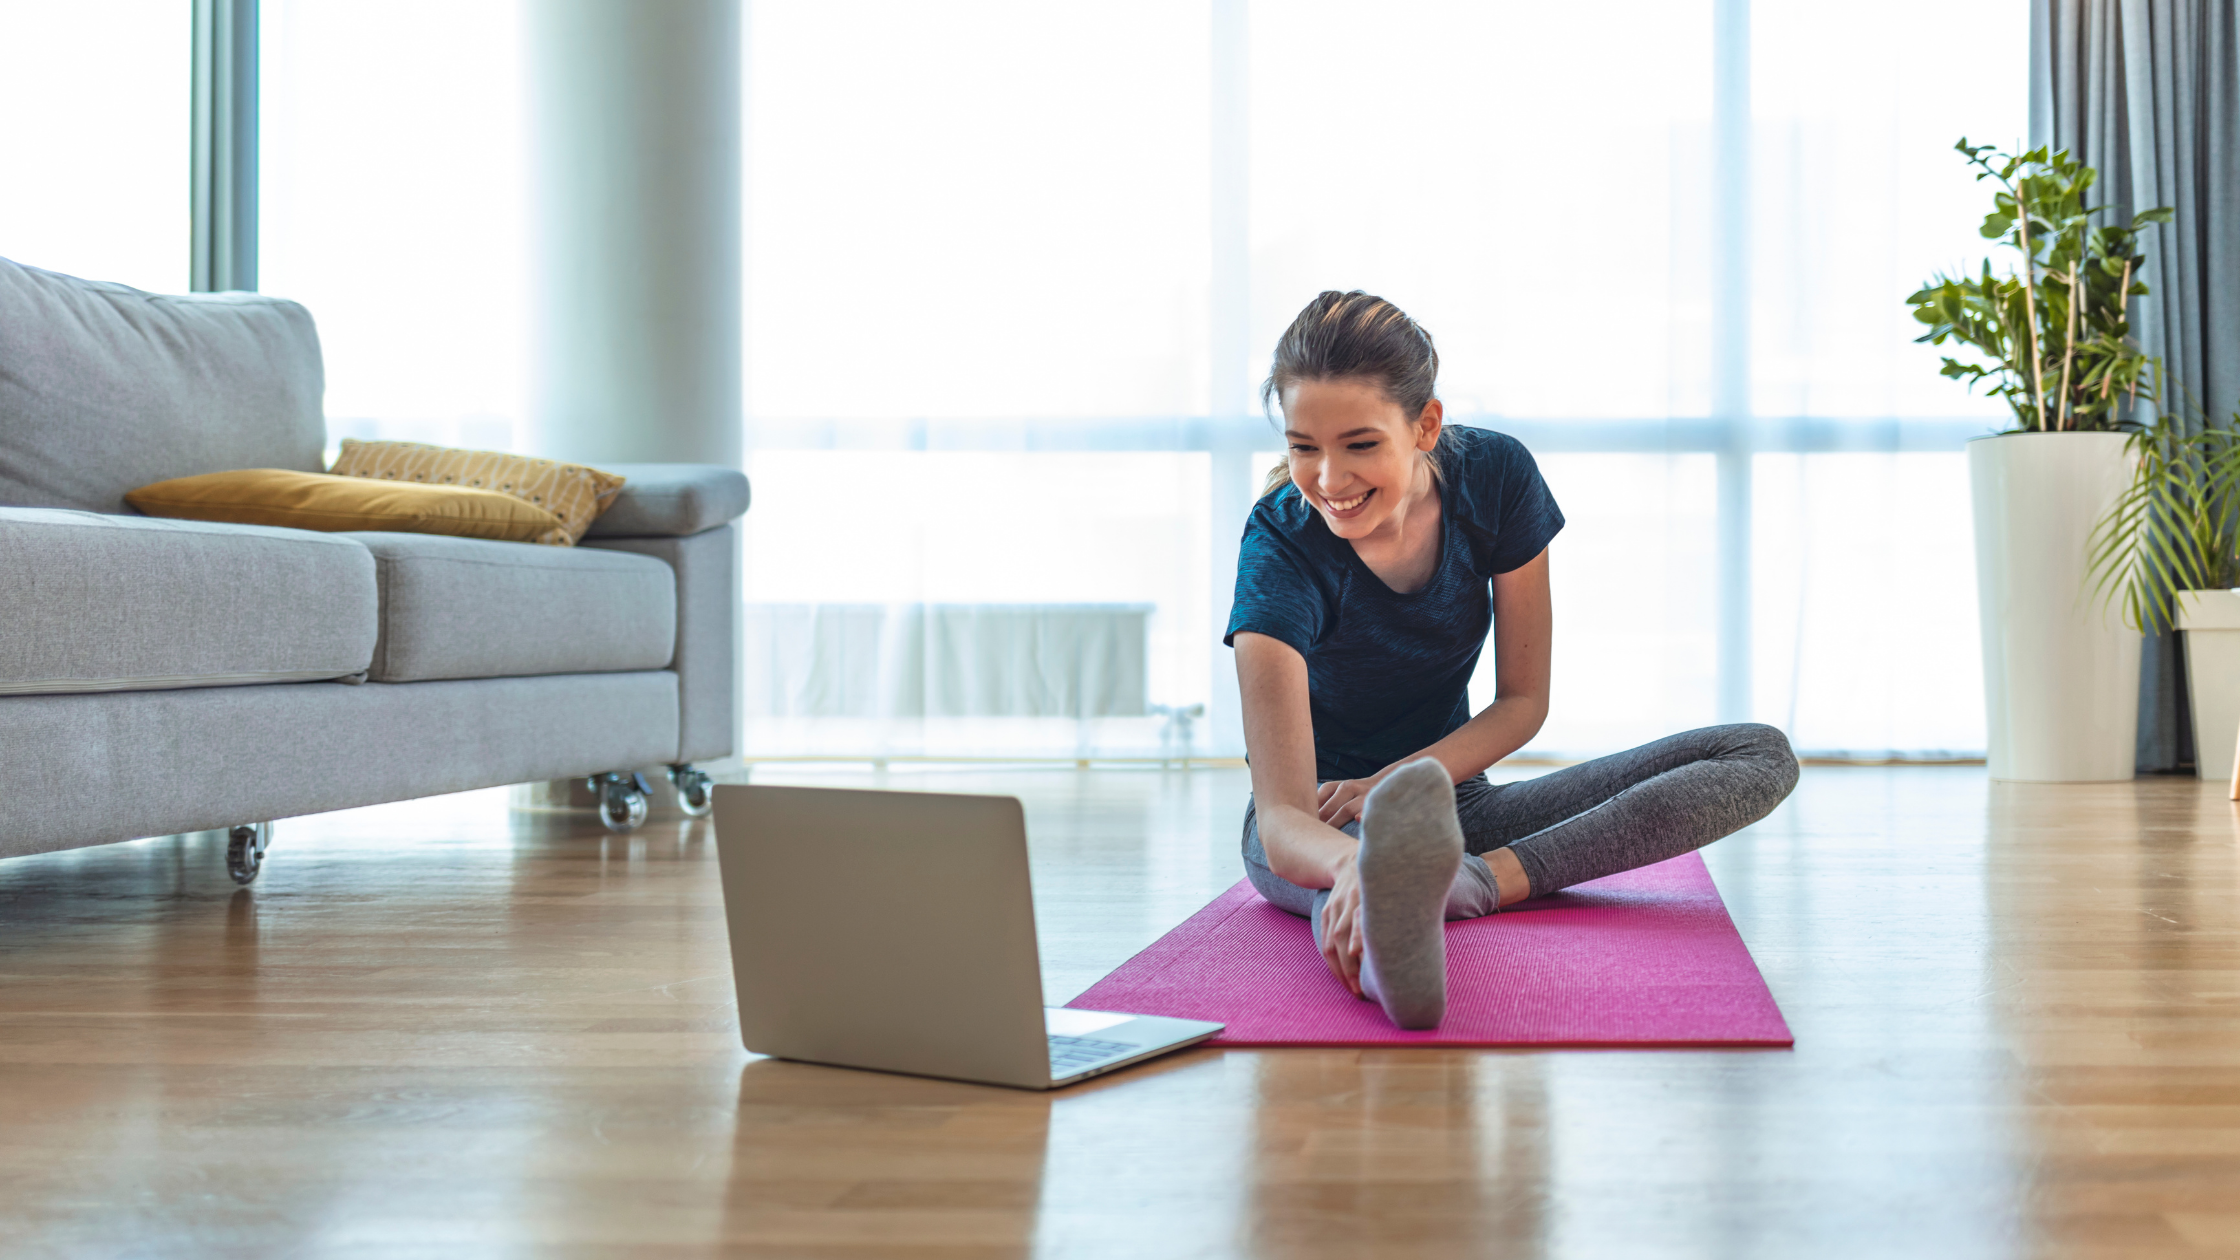 Woman smiling while working out at home on yoga mat